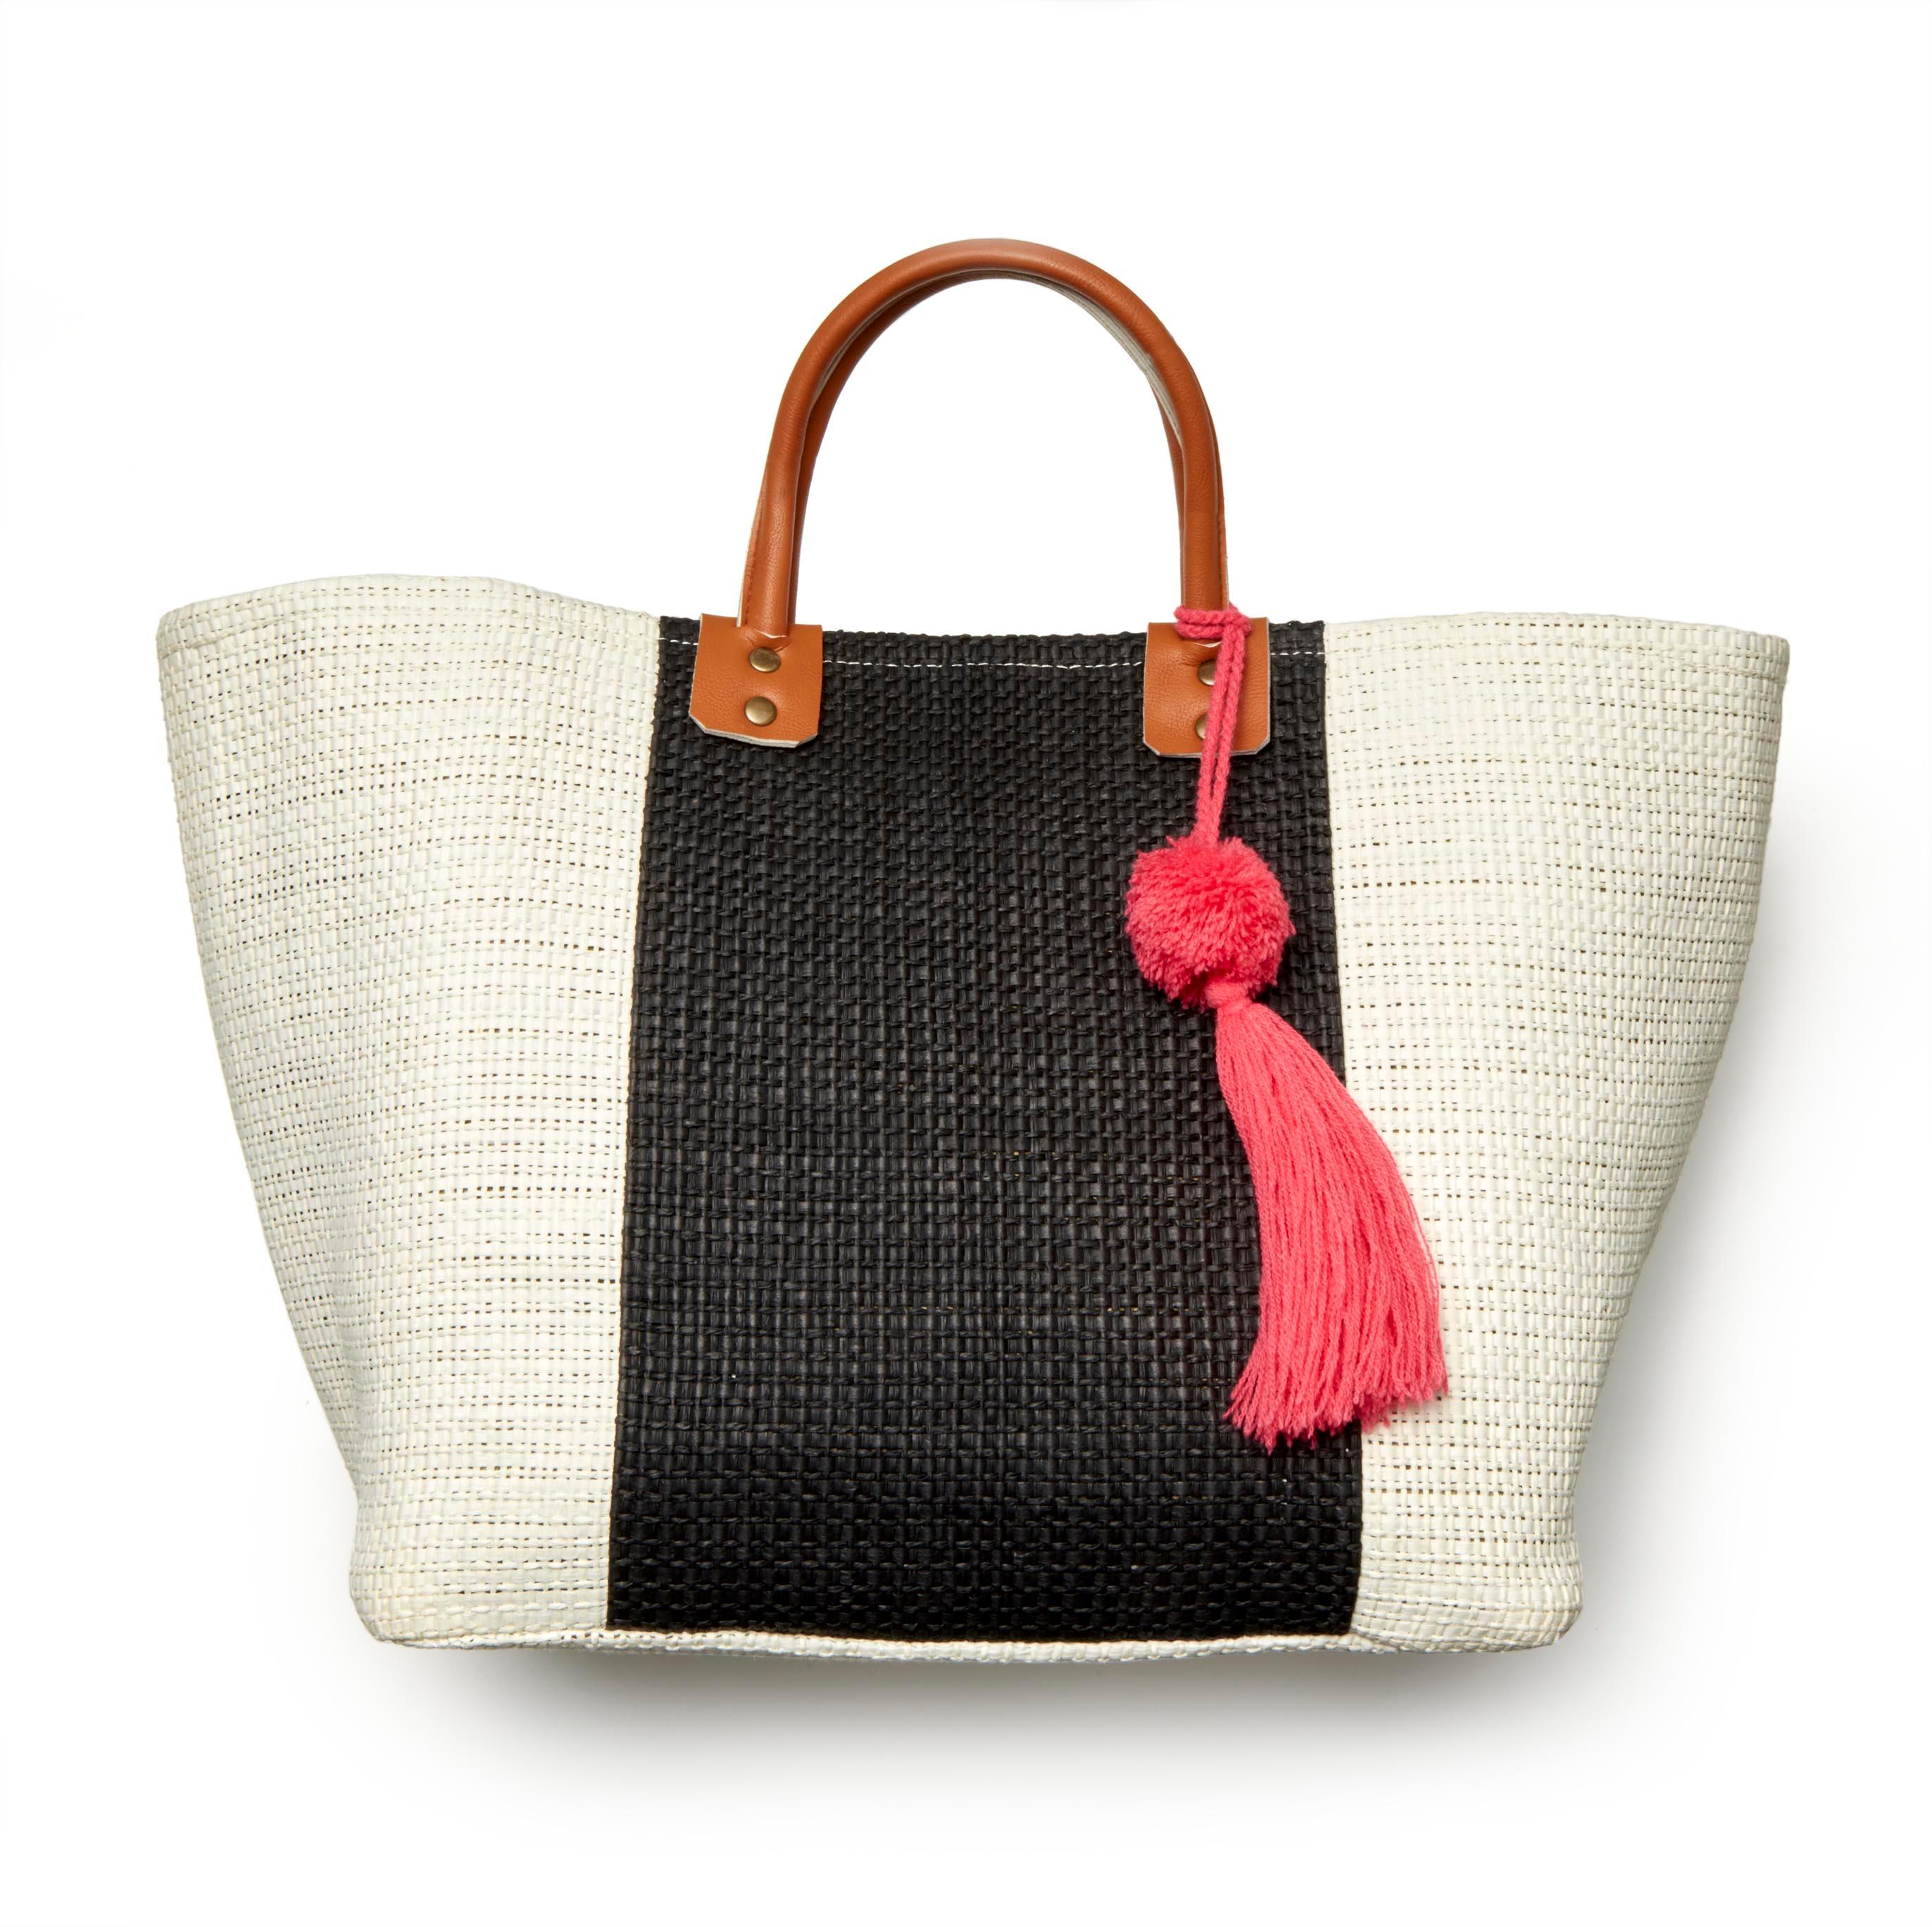 Lord & Taylor Tasseled Woven Market Tote // Price: $68 // Purchase at Lord & Taylor stores // (Photo: Lord & Taylor)